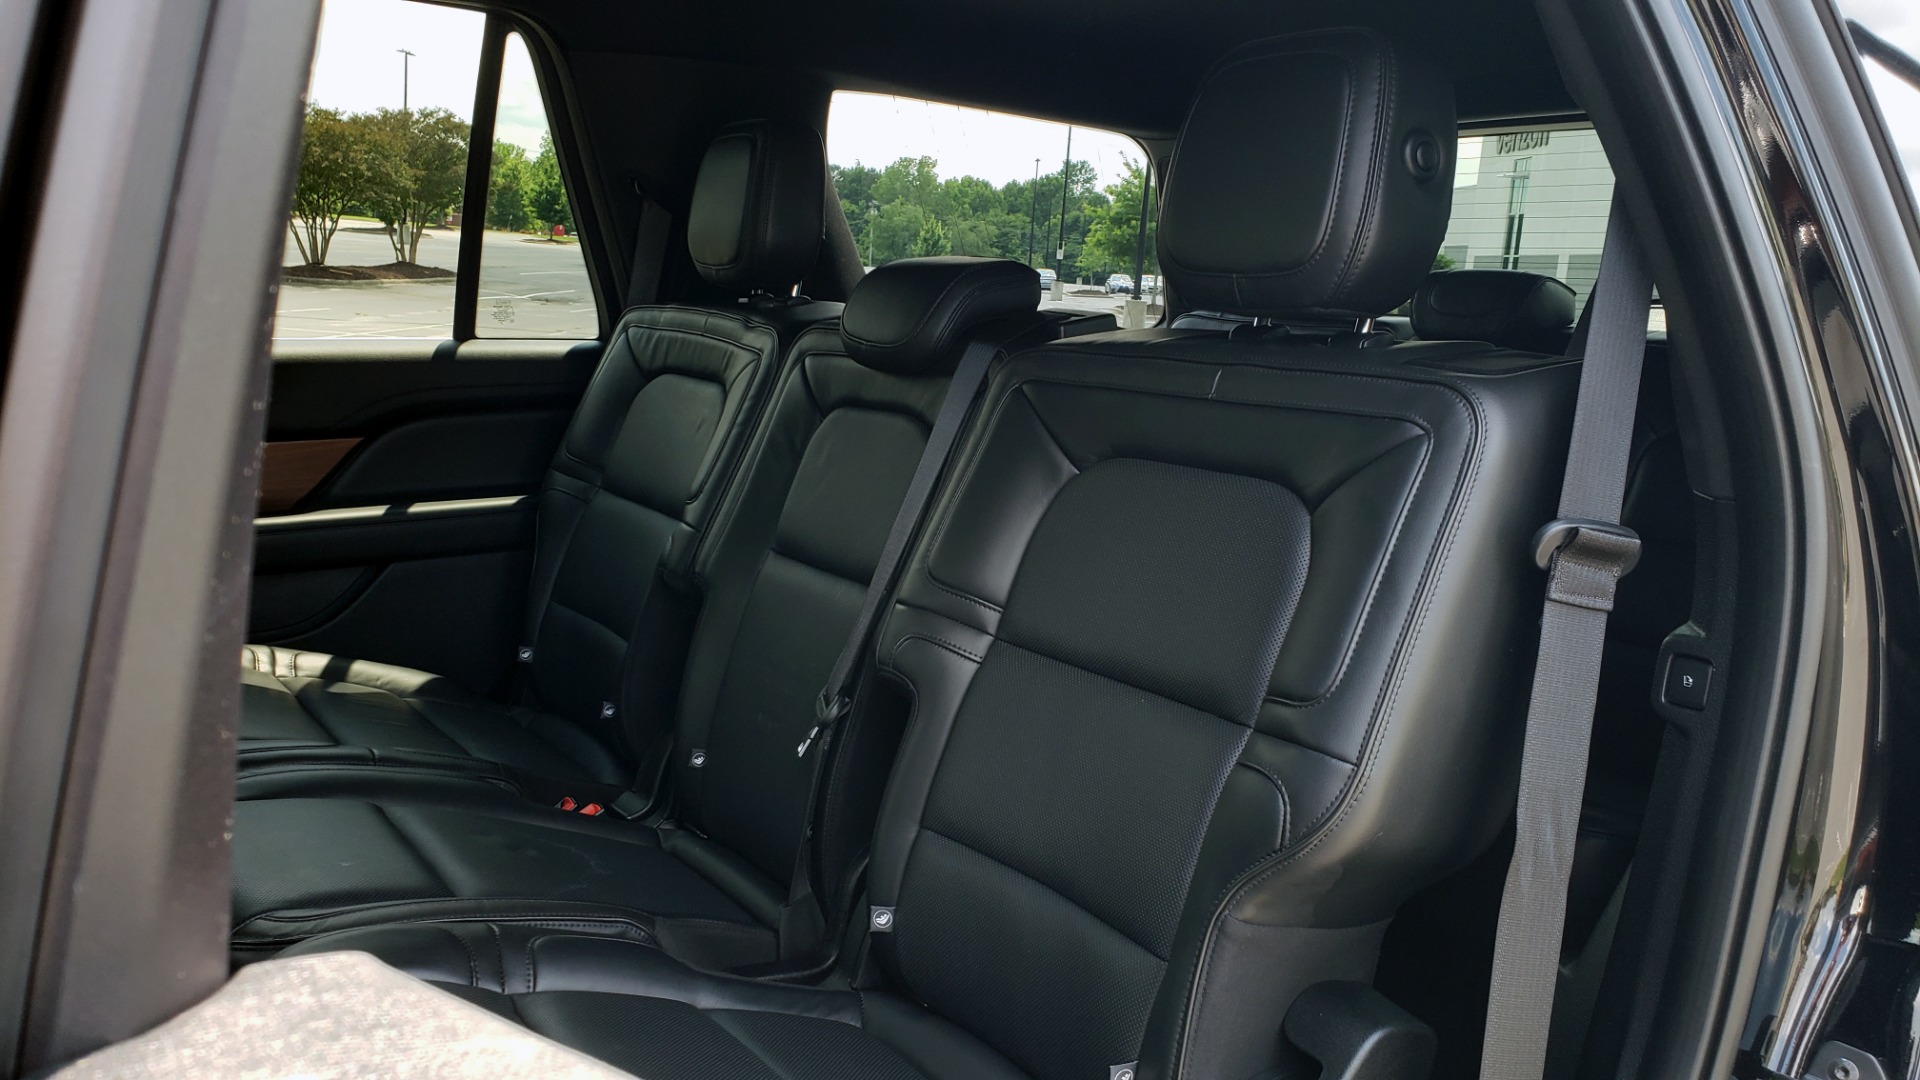 Used 2019 Lincoln NAVIGATOR RESERVE 4X4 / NAV / PANO-ROOF / REVEL ULTIMA AUDIO / 3-ROW / REARVIEW for sale $74,795 at Formula Imports in Charlotte NC 28227 70